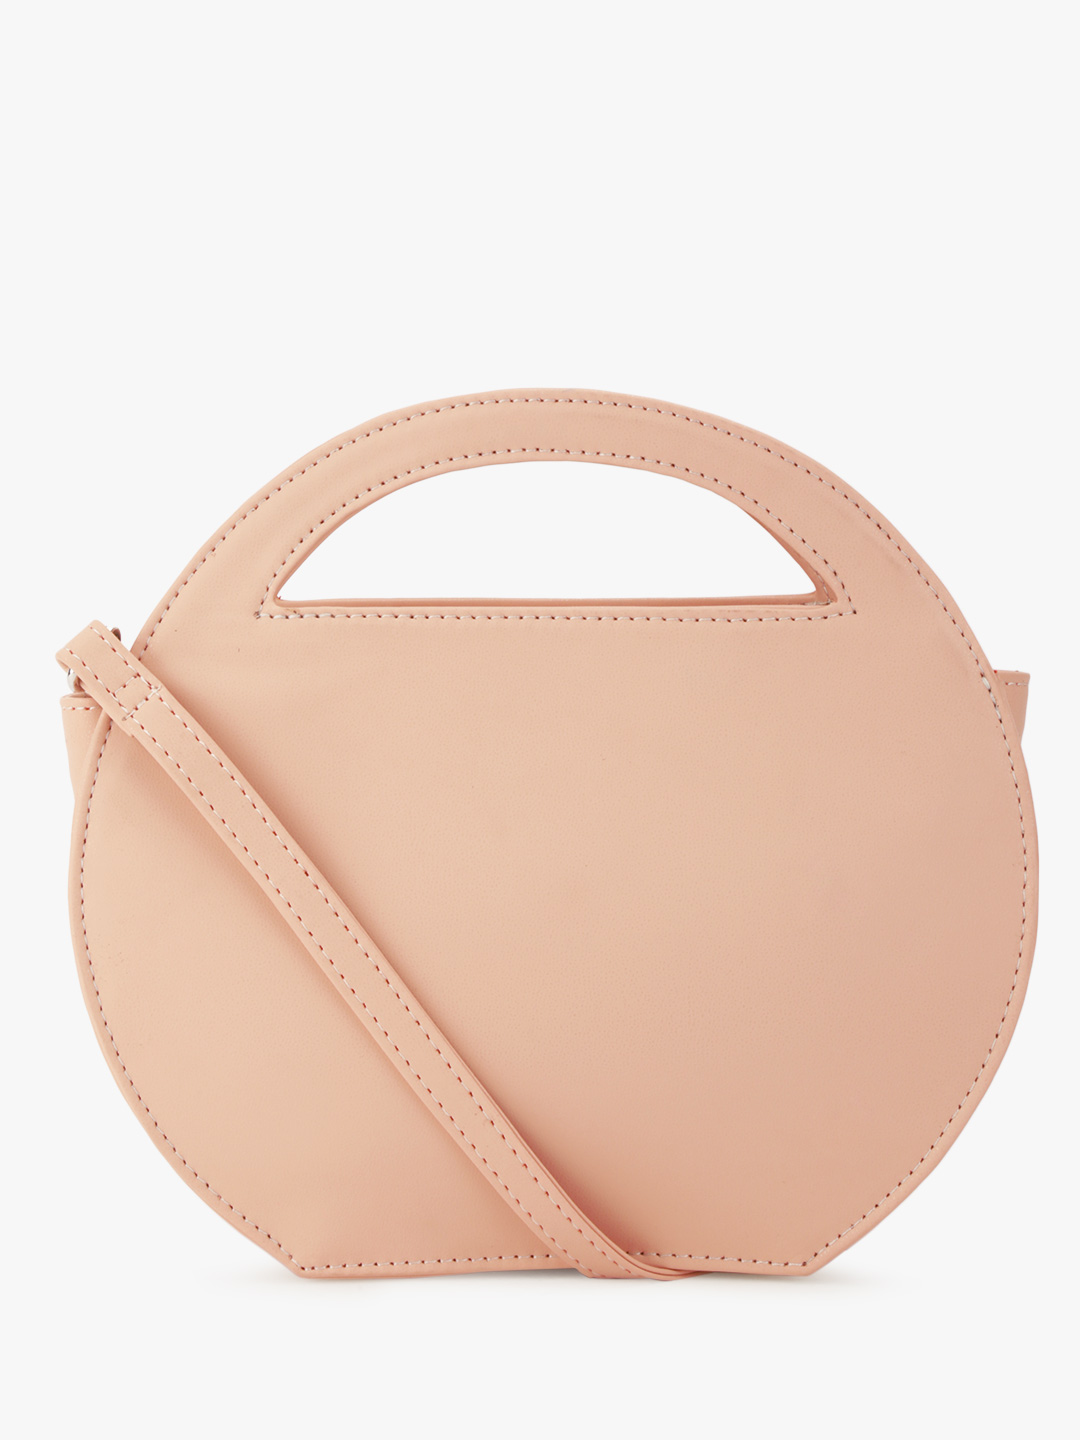 Paris Belle Nude Structured Sling Bag 1